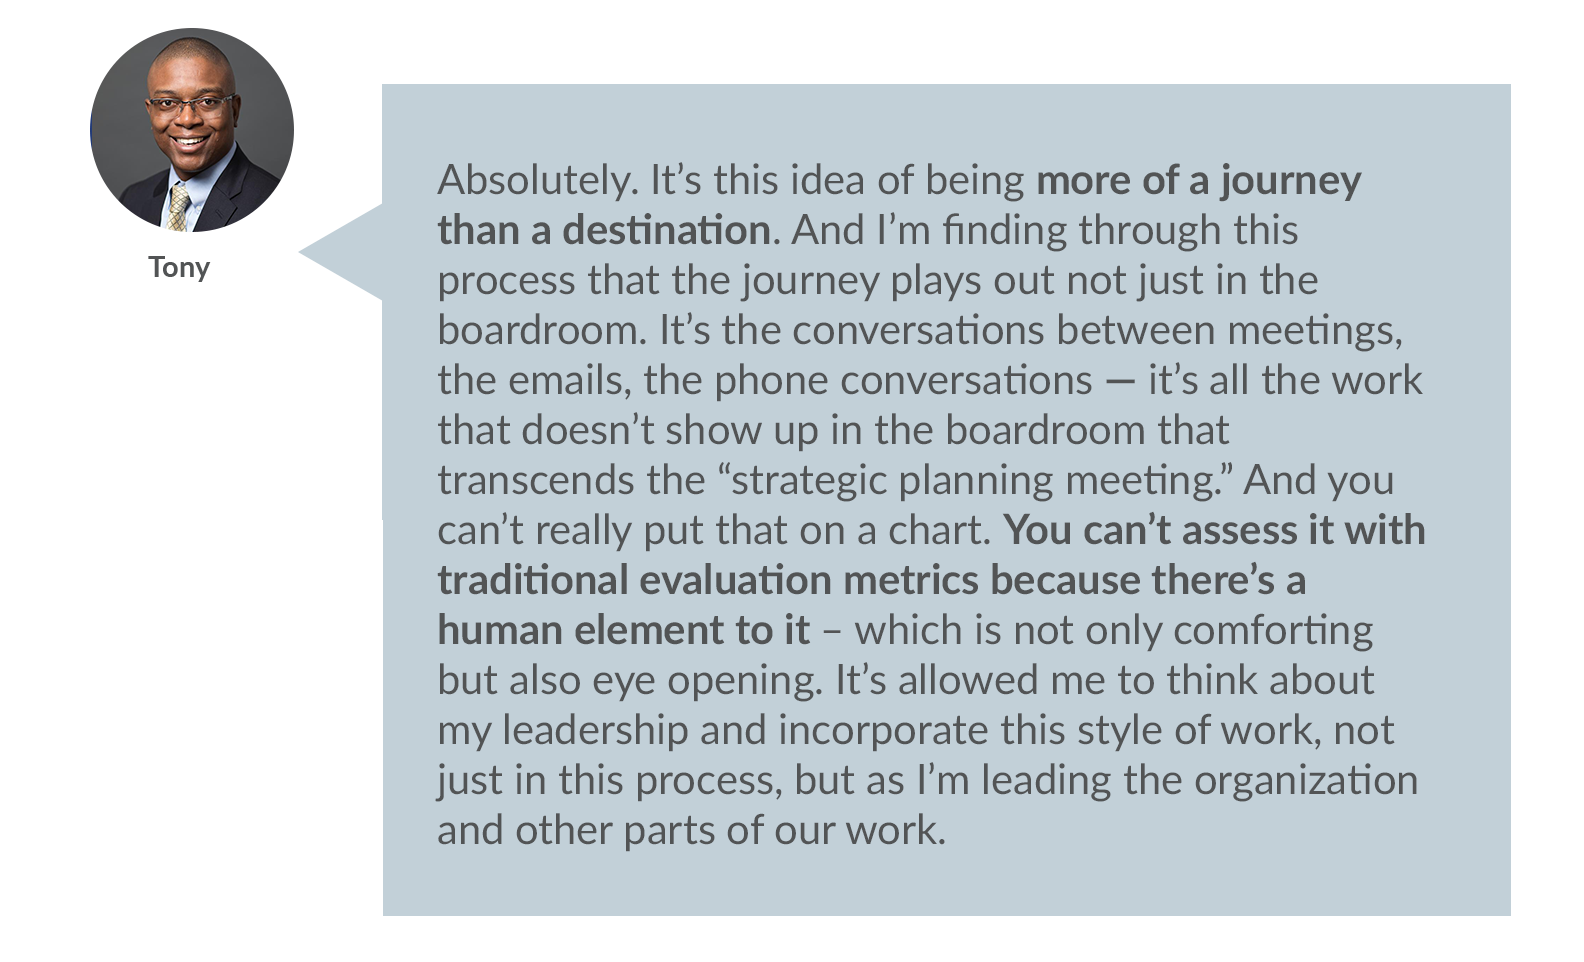 """Tony: Absolutely. It's this idea of being more of a journey than a destination. And I'm finding through this process that the journey plays out not just in the boardroom. It's the conversations between meetings, the emails, the phone conversations -- it's all the work that doesn't show up in the boardroom that transcends the """"strategic planning meeting"""". And you can't really put that on a chart. You can't assess it with traditional evaluation metrics because there's a human element to it – which is not only comforting but also eye opening. It's allowed me to think about my leadership and incorporate this style of work, not just in this process, but as I'm leading the organization and other parts of our work.   Lisa: It's that holistic approach. It's not mind or heart, but the integration of the two. And when we think about centering the heart, it's really leaning into those feelings or emotions, which is not something that we necessarily think about in strategy.   And people might think, """"oh, it's valuing emotion over thinking"""" but it's not. It's relational in the same way Tony described. It's about relationships with ourselves, each other, our communities, and larger systems. And especially when we think about family foundations, there's a whole emotional field that exists just around family."""